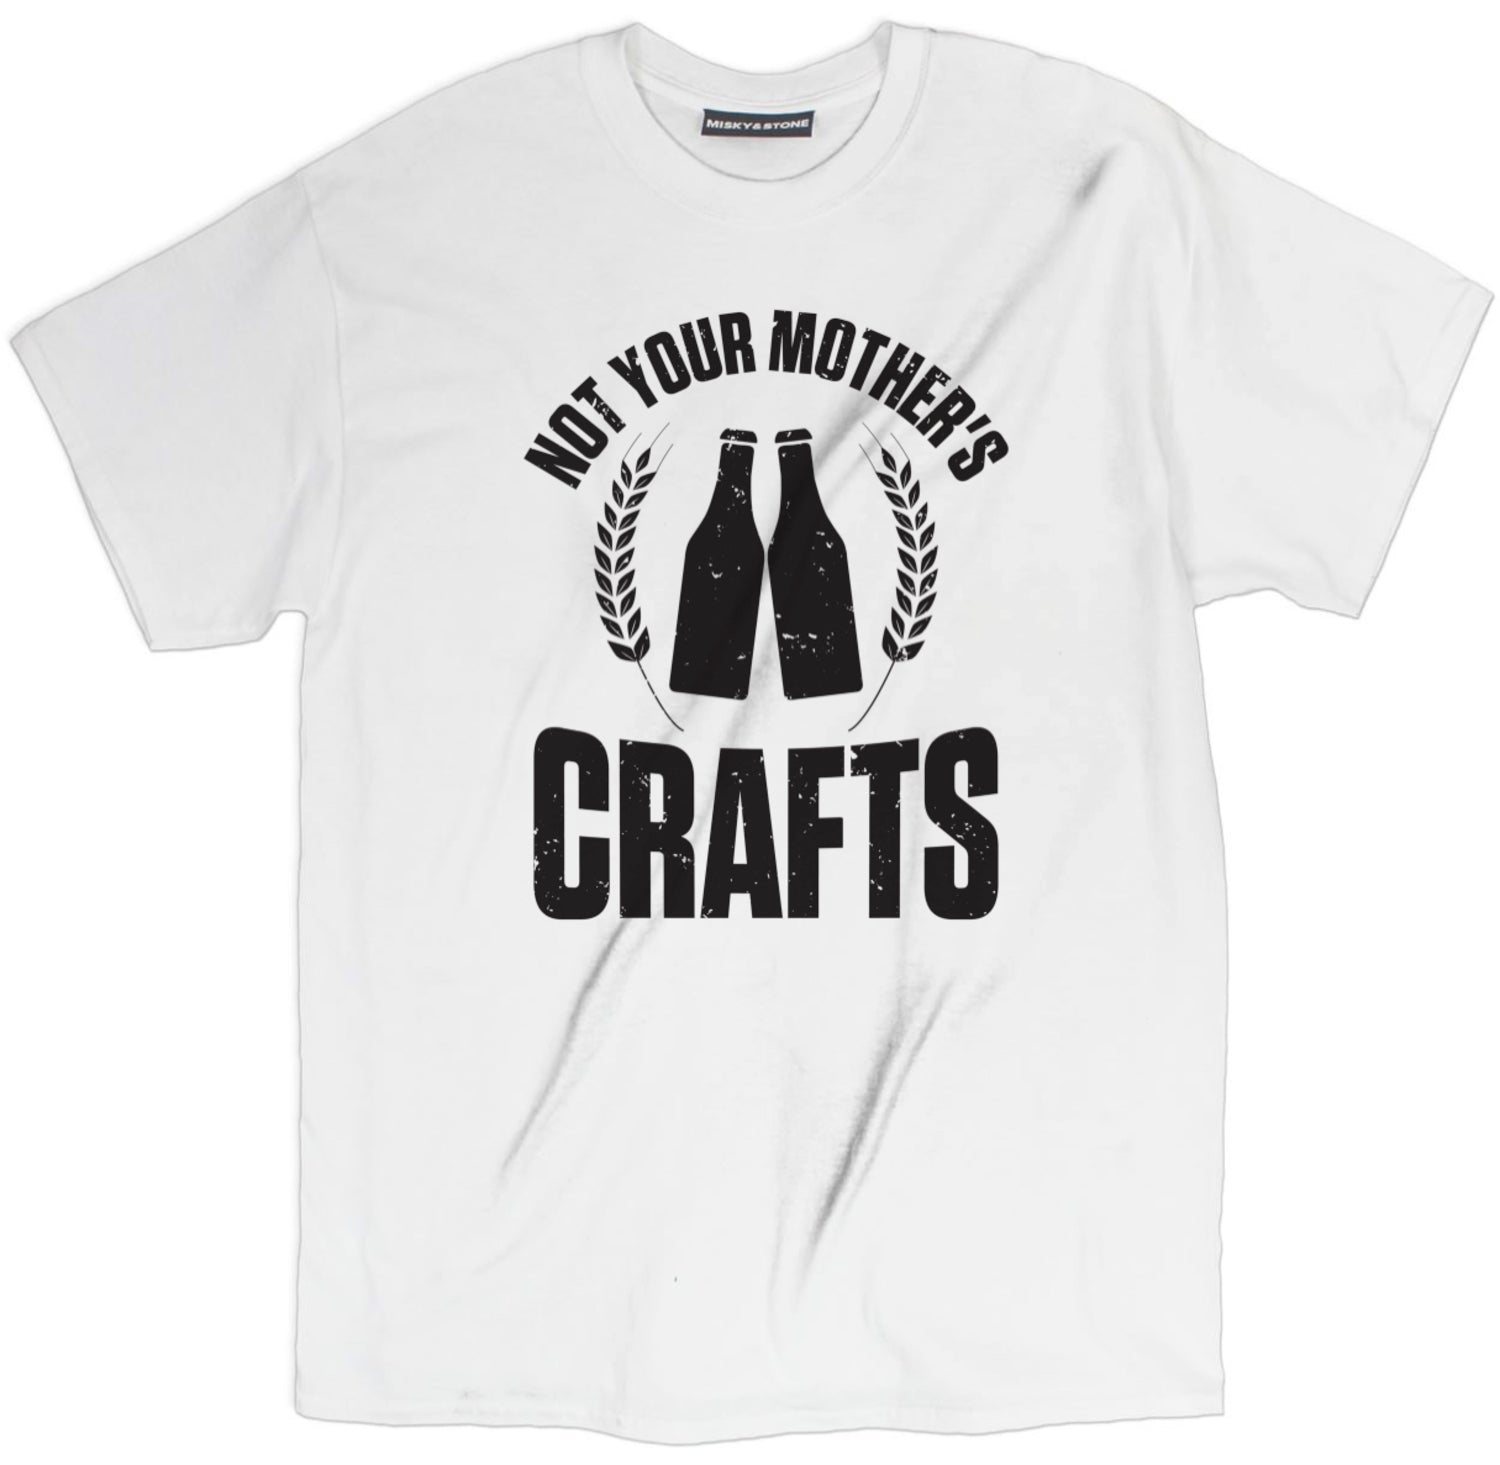 Not Your Mothers Crafts Shirt